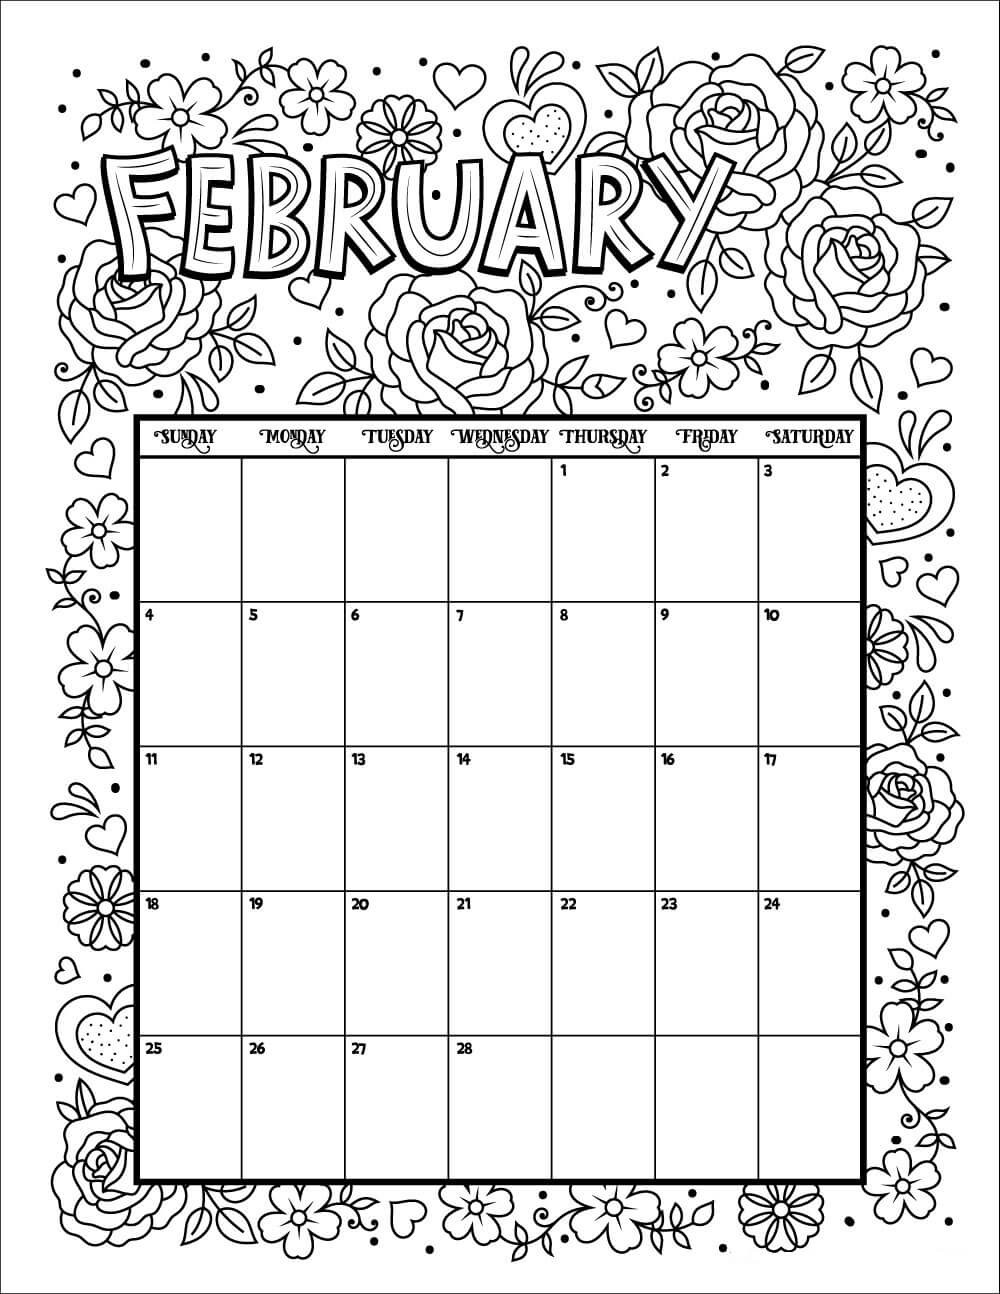 Coloring Book Calendars  20 Free Printable February Coloring Pages